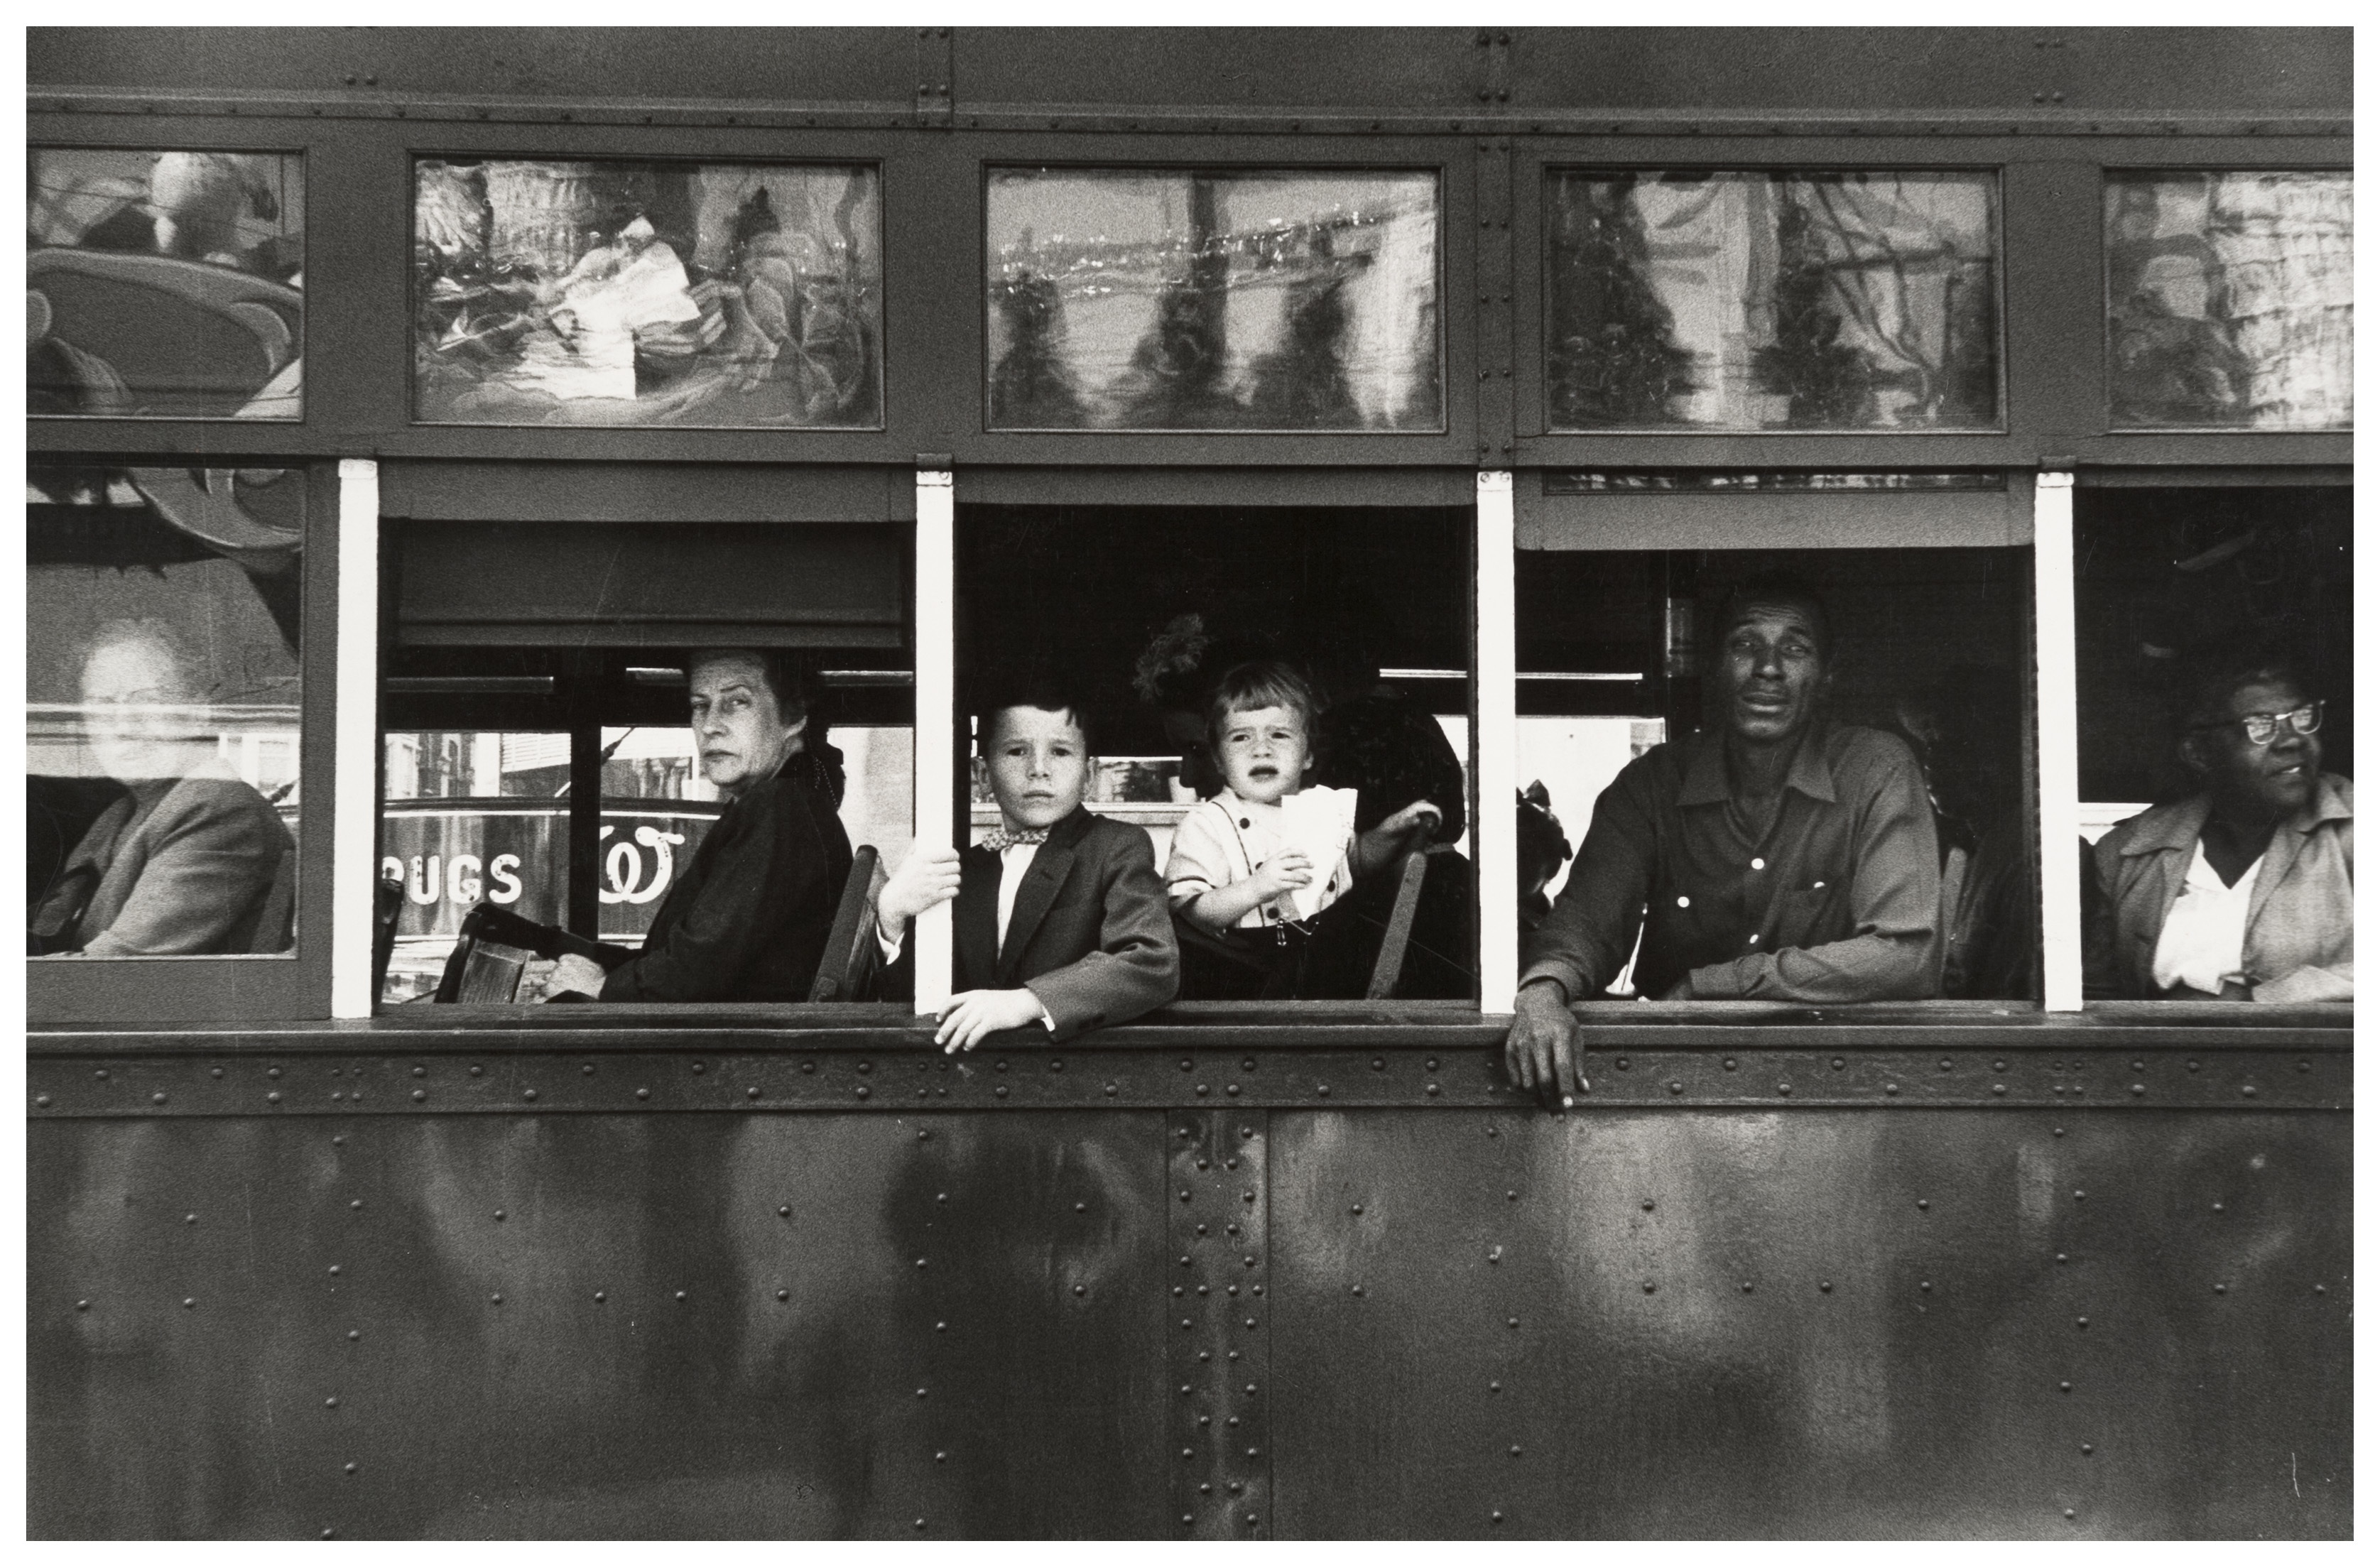 Trolley-- New Orleans, 1955 by photographer Robert Frank.